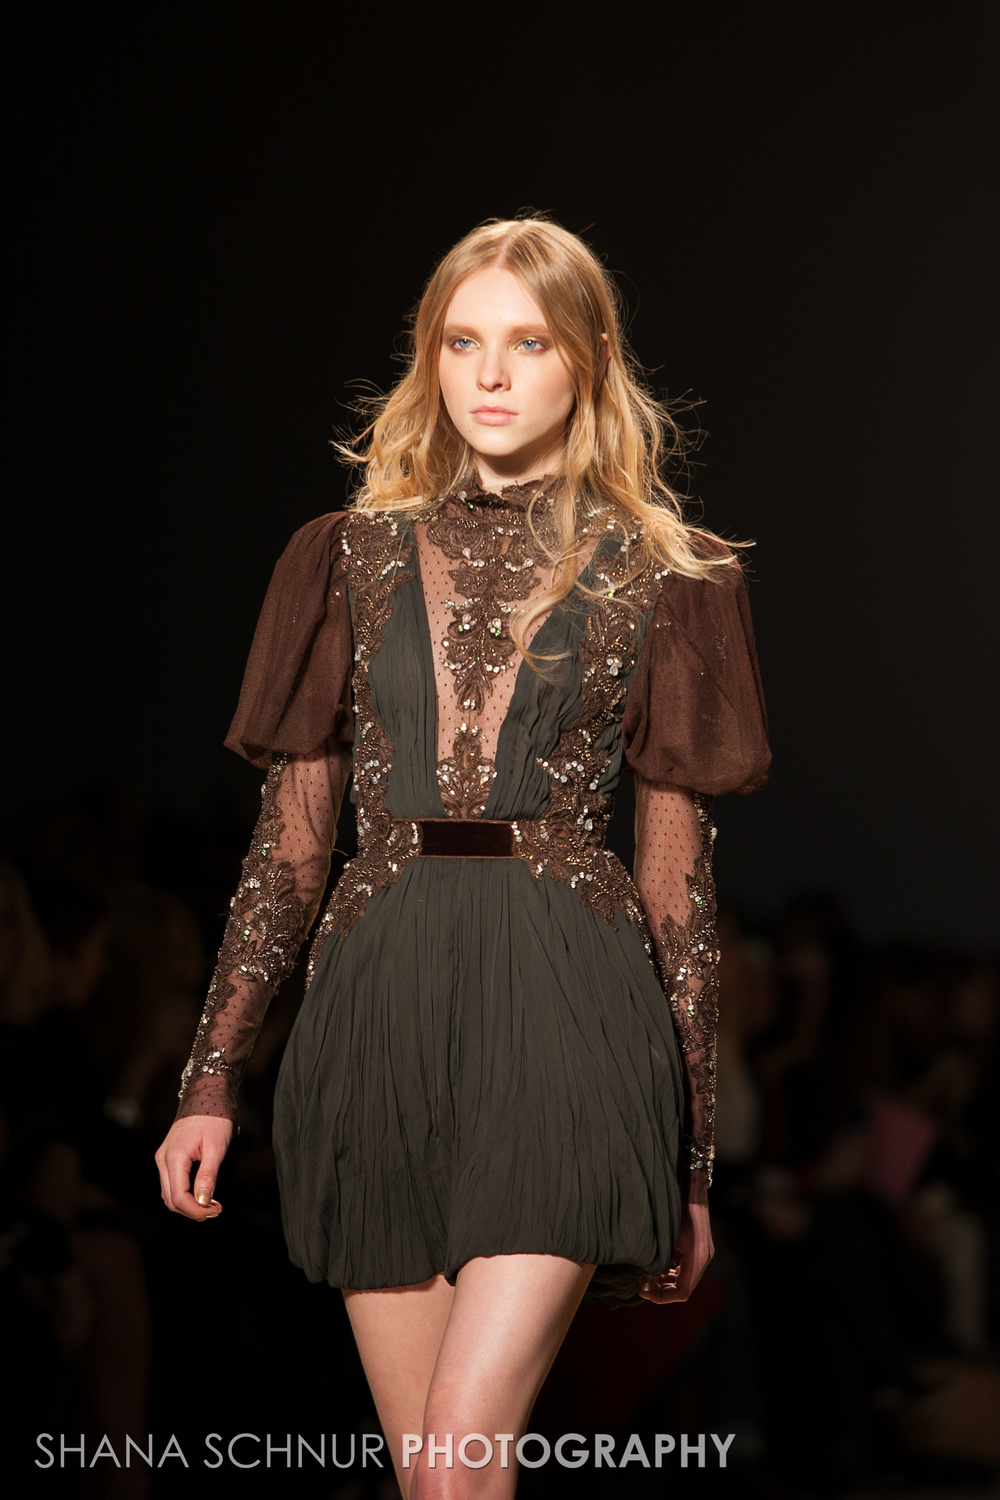 Reem-Acra-New-York-Fashion-Week-Fall-Winter-2015-Shana-Schnur-Photography-IMG_9480-013.jpg